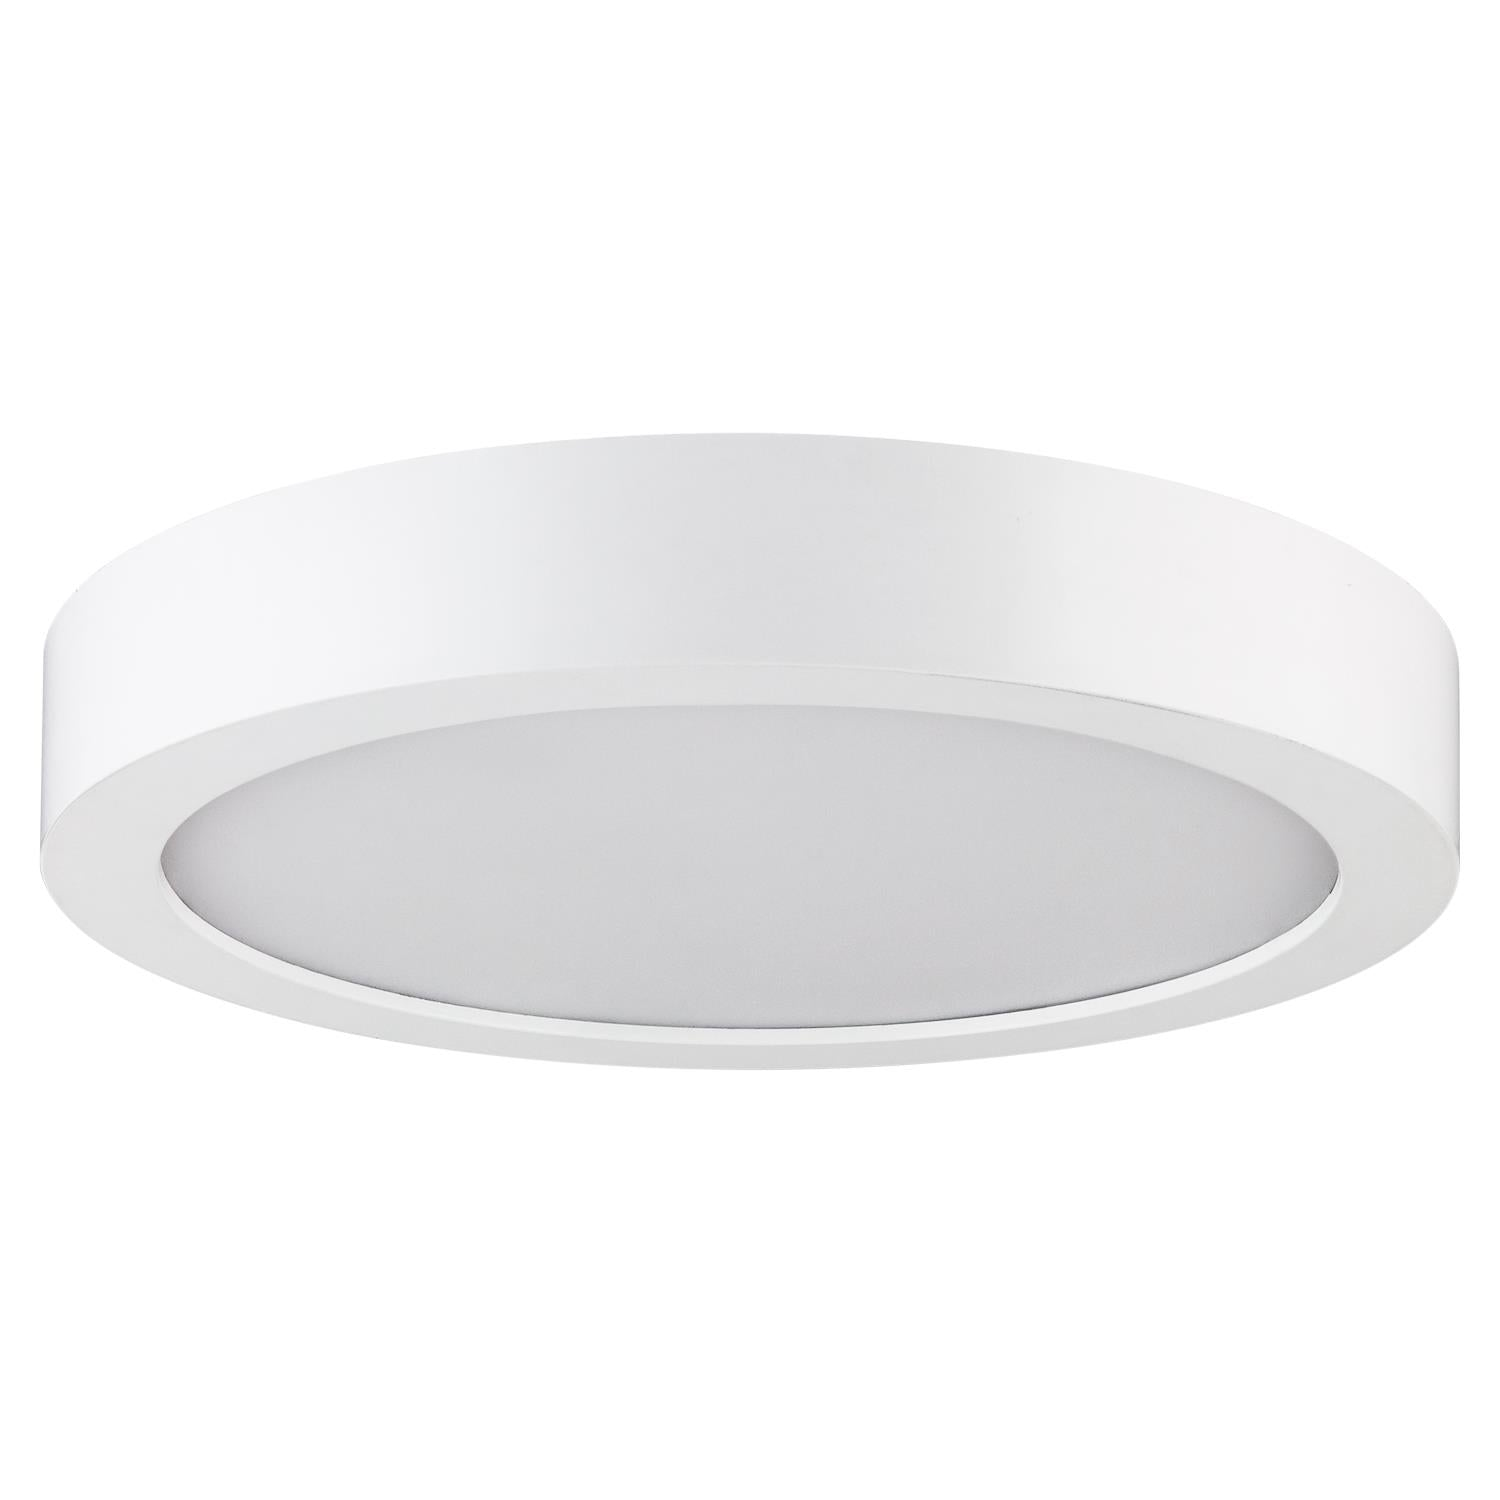 SUNLITE 14W 7in. LED Round Mini Panel Mount Ceiling Light 4000K Cool White